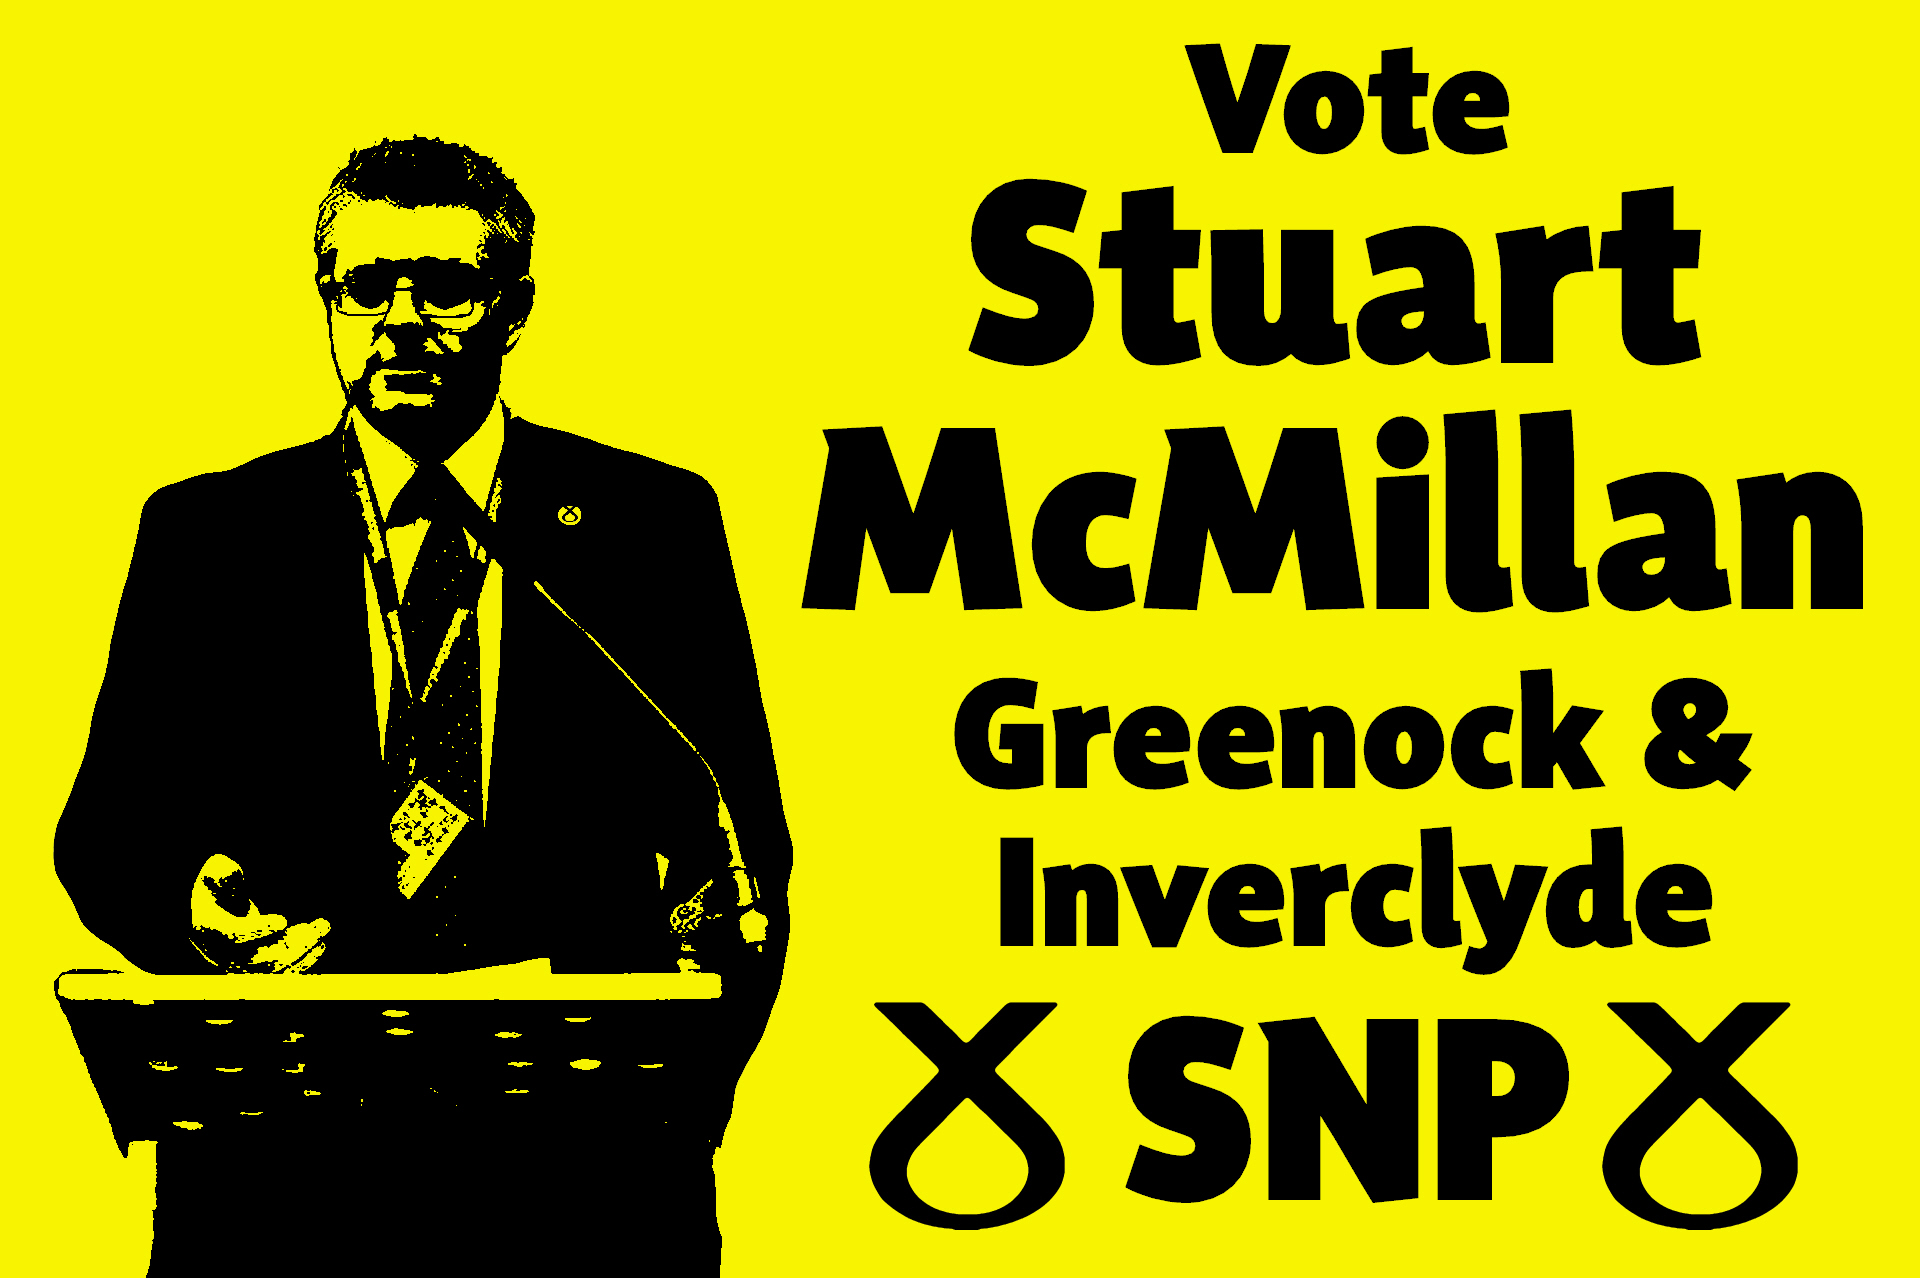 Stuart McMillan has represented West Scotland as a regional MSP since 2007. He has fought every election for the Greenock & Inverclyde Constituency, and greatly increased his vote share each time.